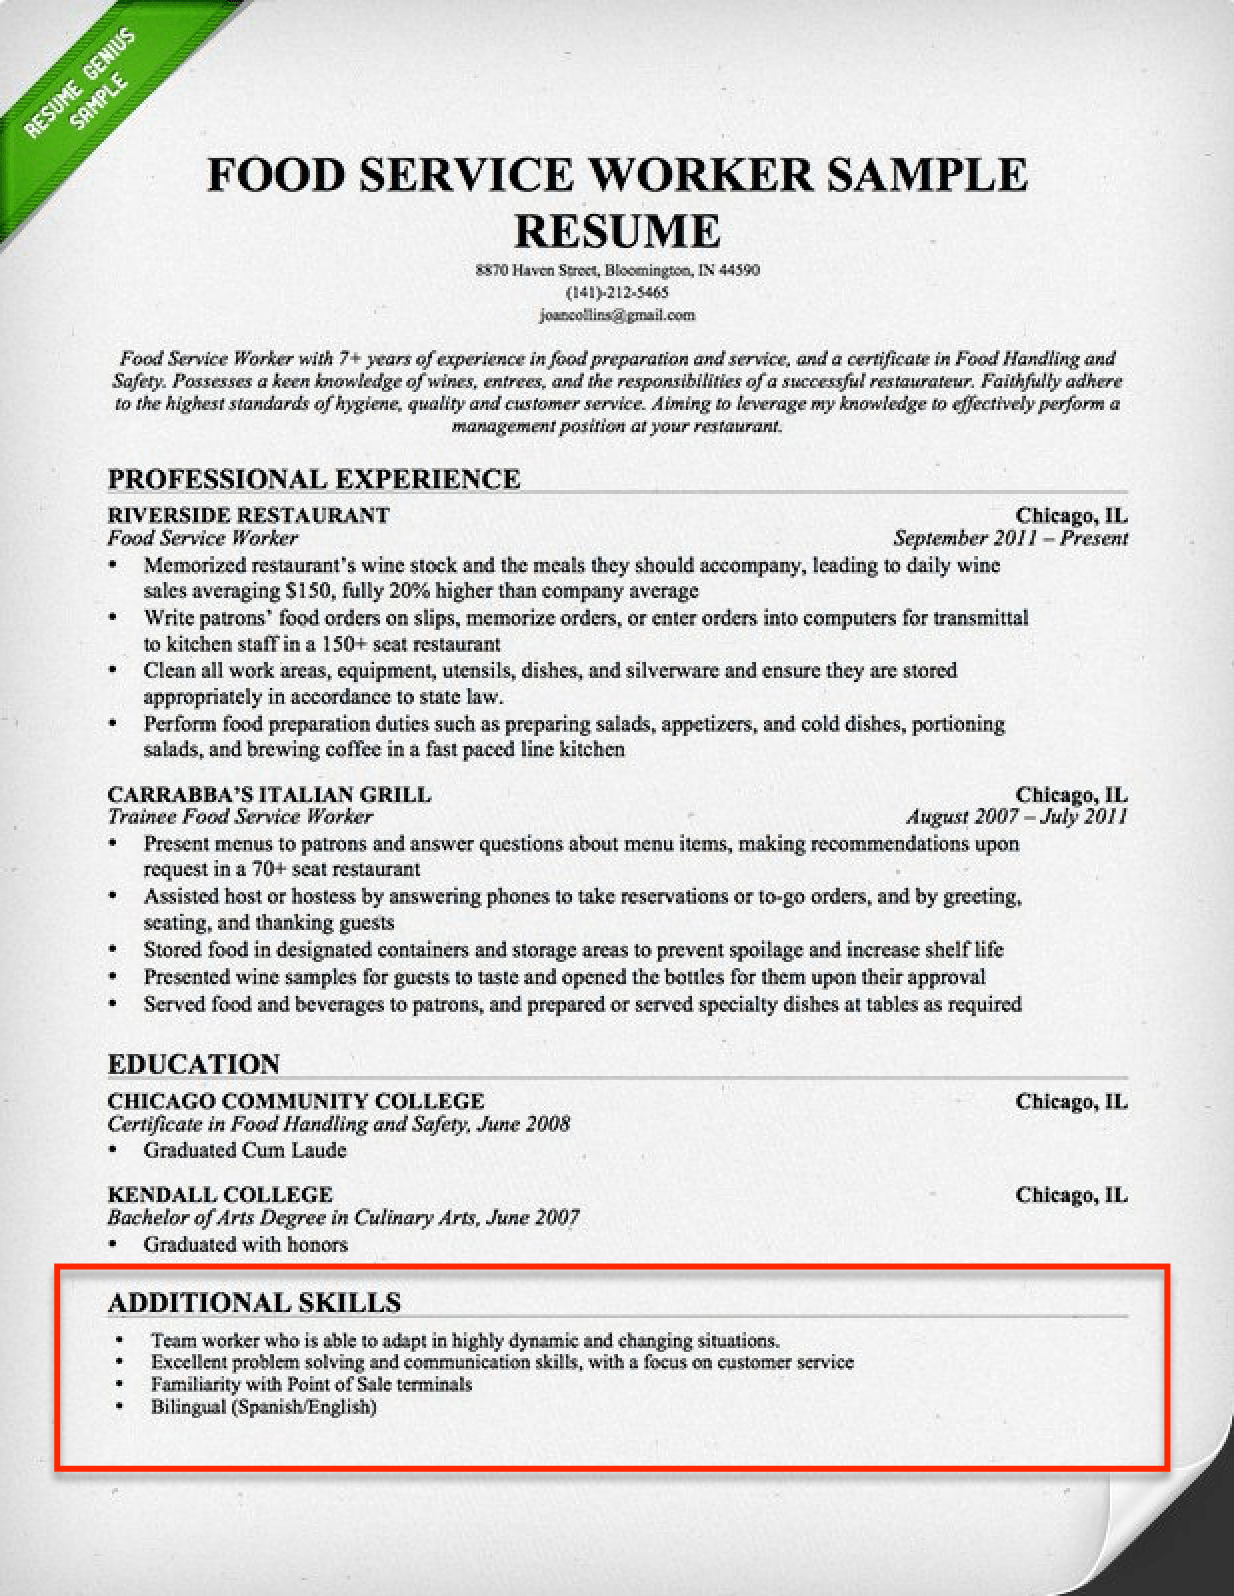 Skill Section Of Resume Example Resume Skills Section 250 43 Skills For Your Resume